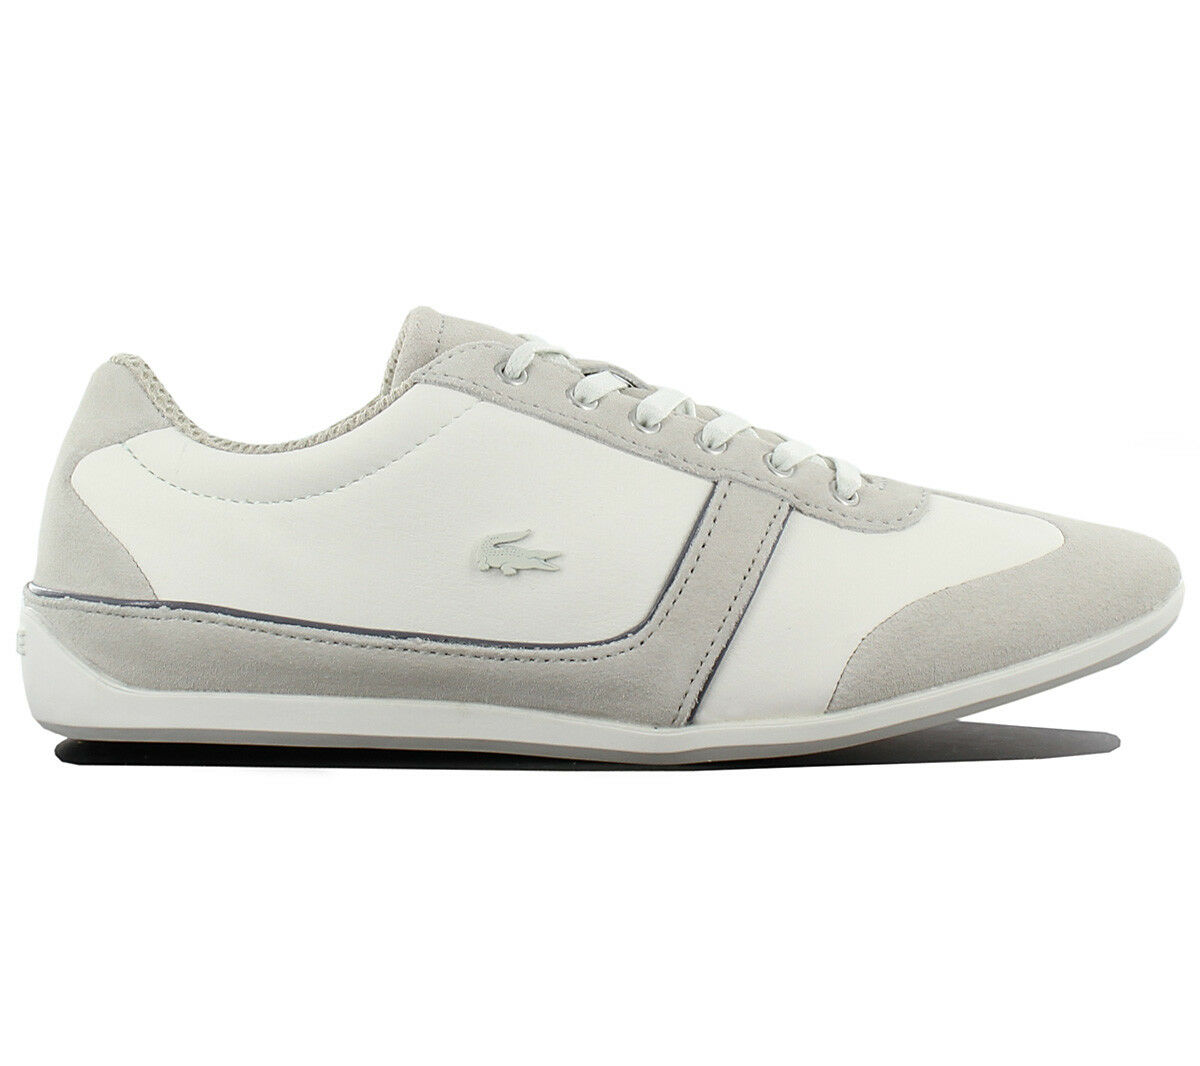 Lacoste Missano Leather W Srw Women's Sneakers Leather Casual shoes 24SRW33542B7